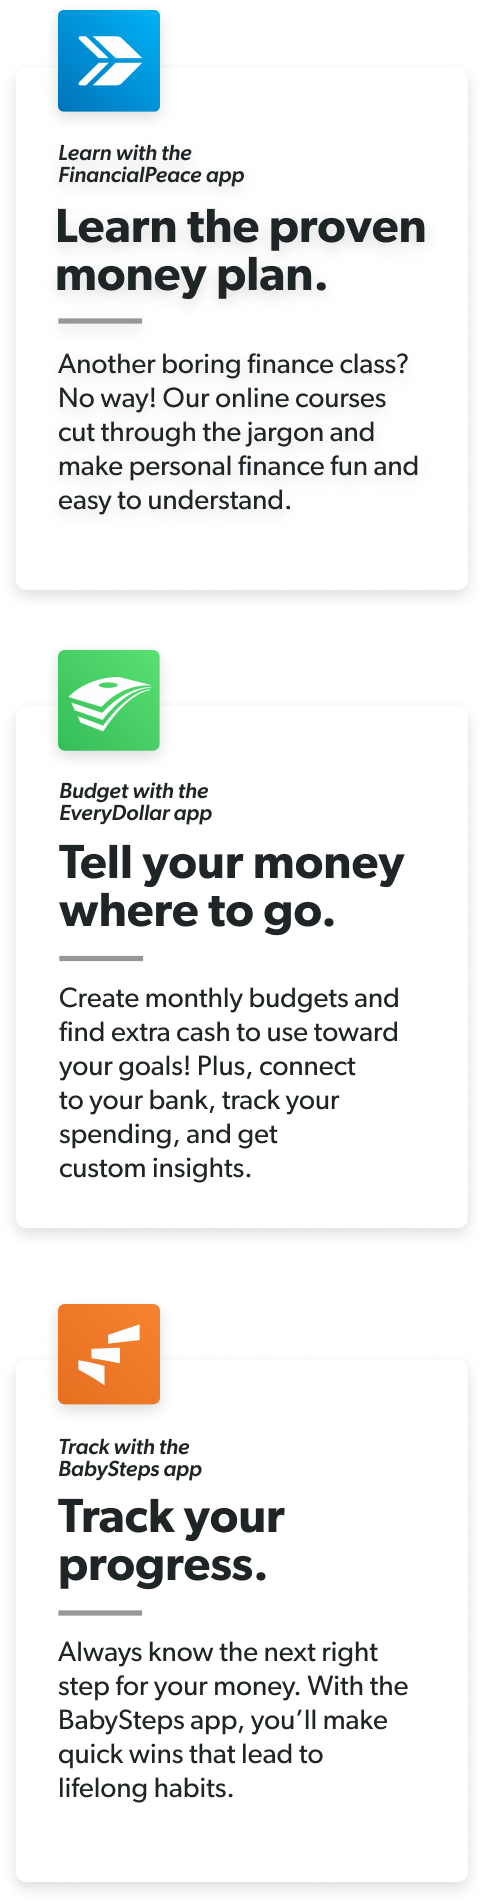 Learn the proven money plan. Tell your money where to go. Track your progress.